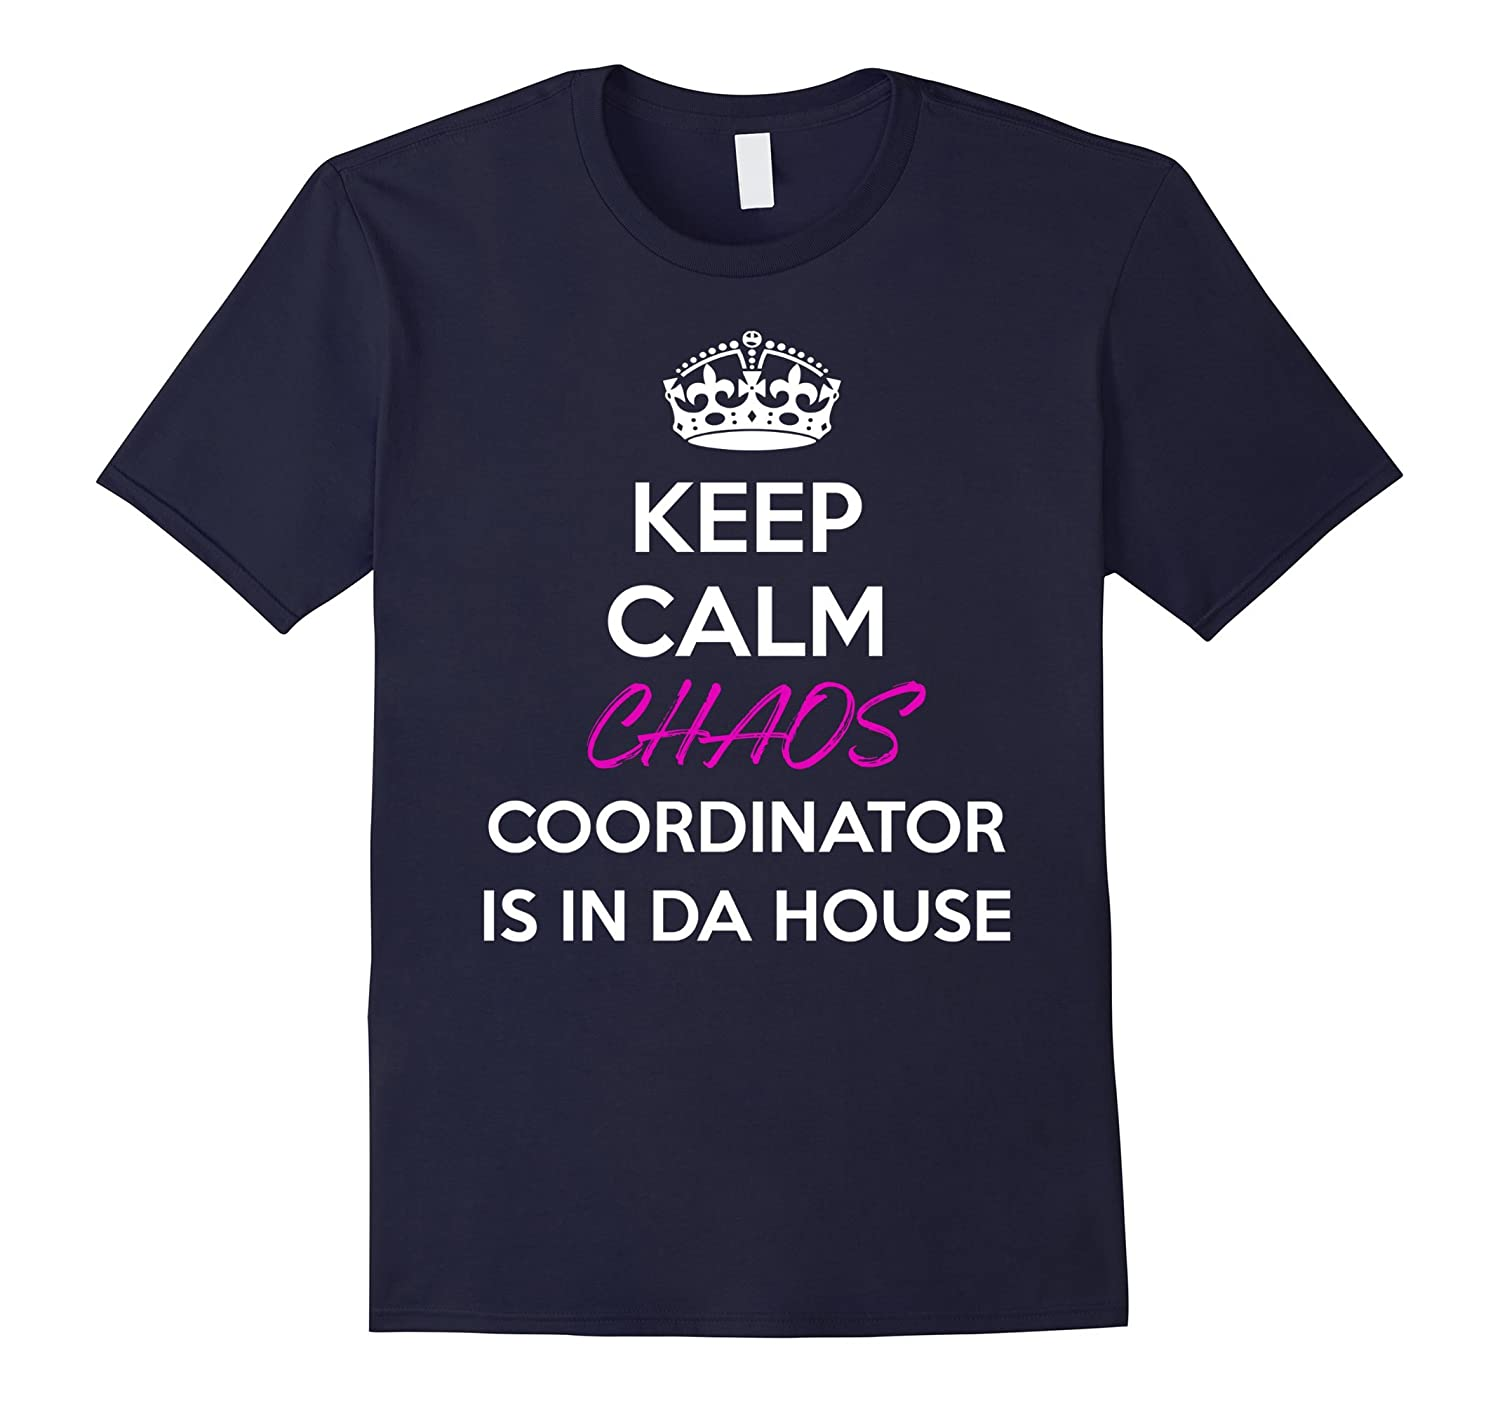 keep Calm Chaos Coordinator is in da house T-Shirt-Vaci